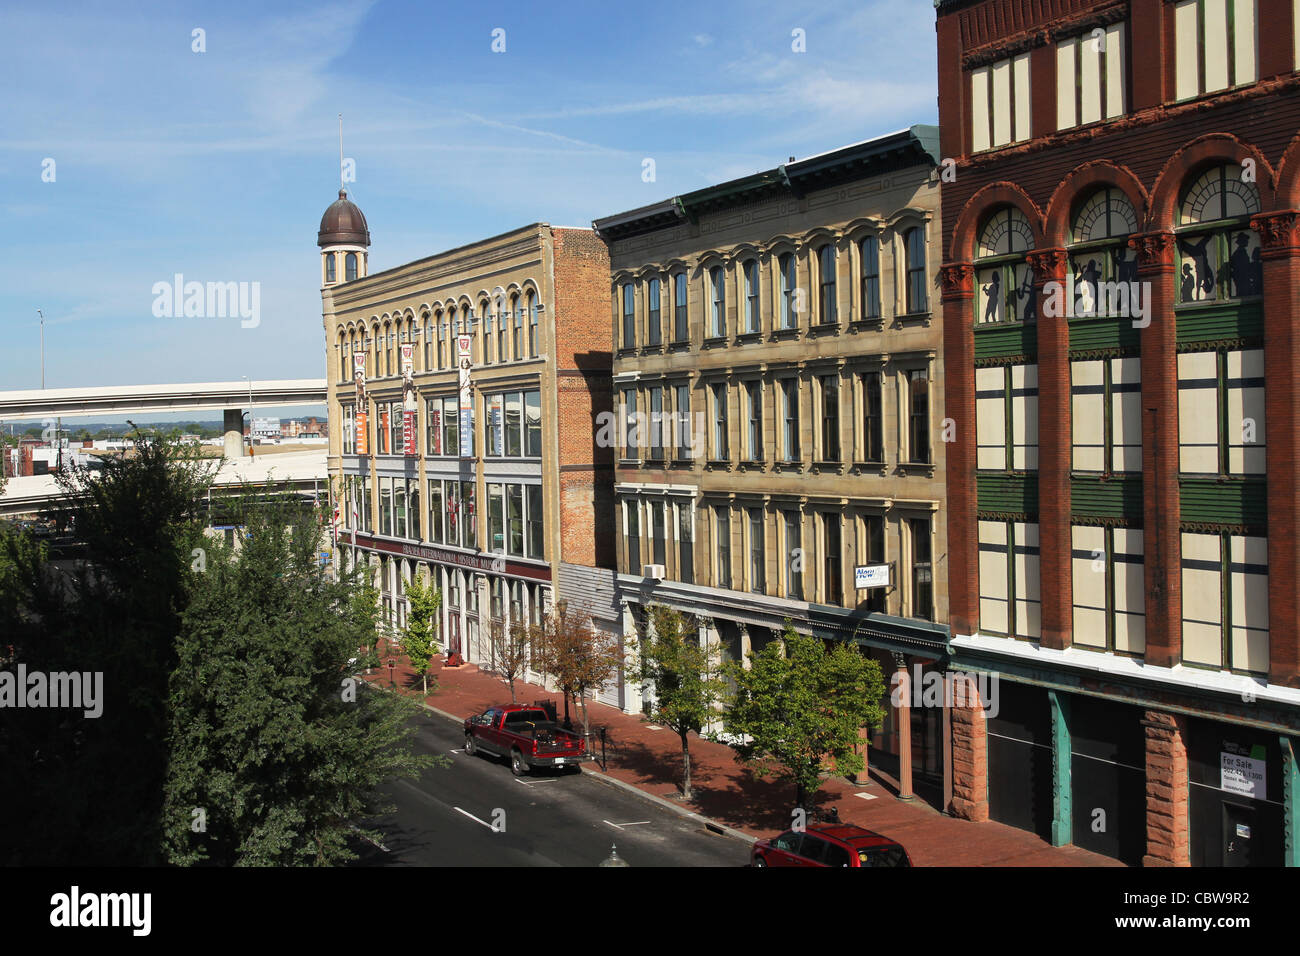 Historic Architecture. Louisville, Kentucky, USA. Frazier International History Museum at left. - Stock Image